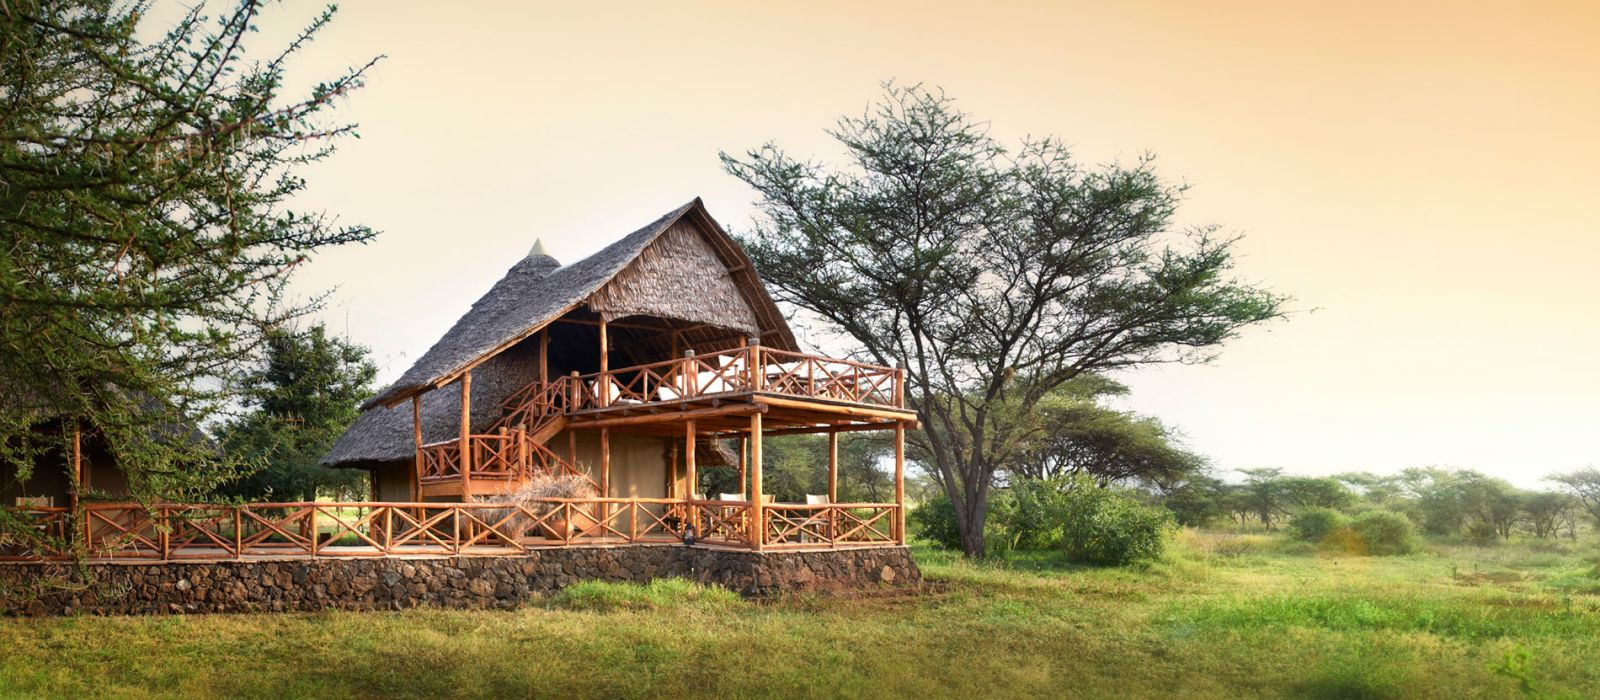 Hotel Severin Safari Camp Kenia